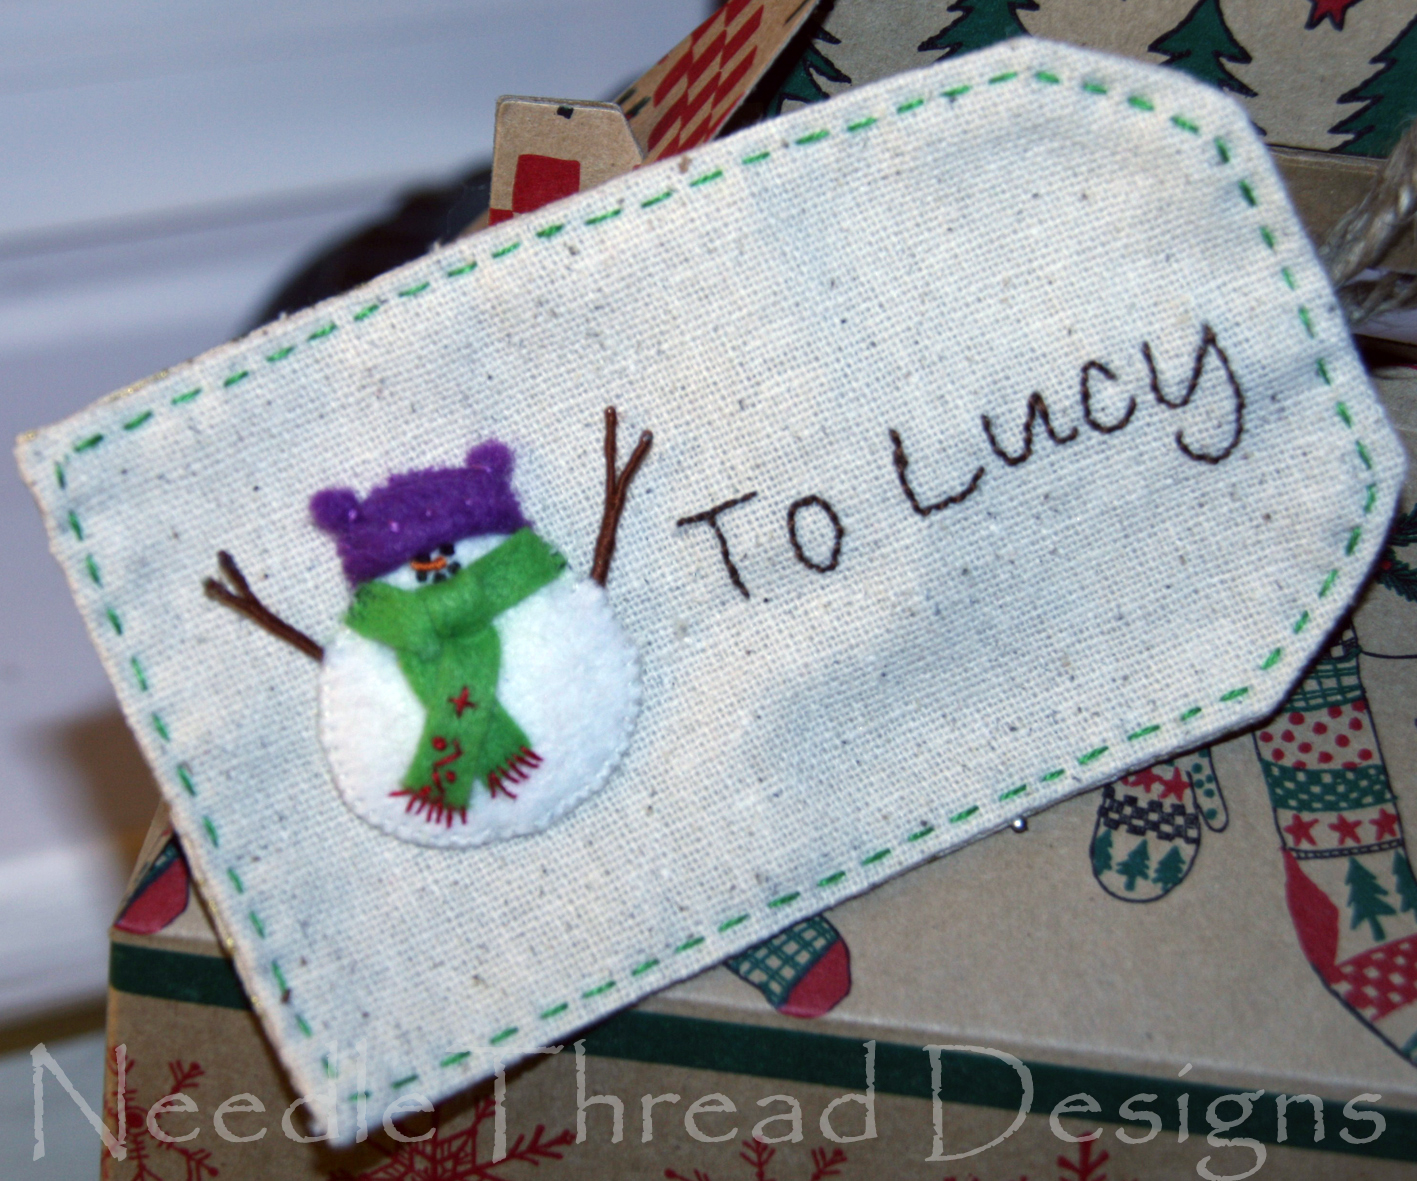 embroidered Christmas gift tag with a stumpwork (raised or padded) snowman